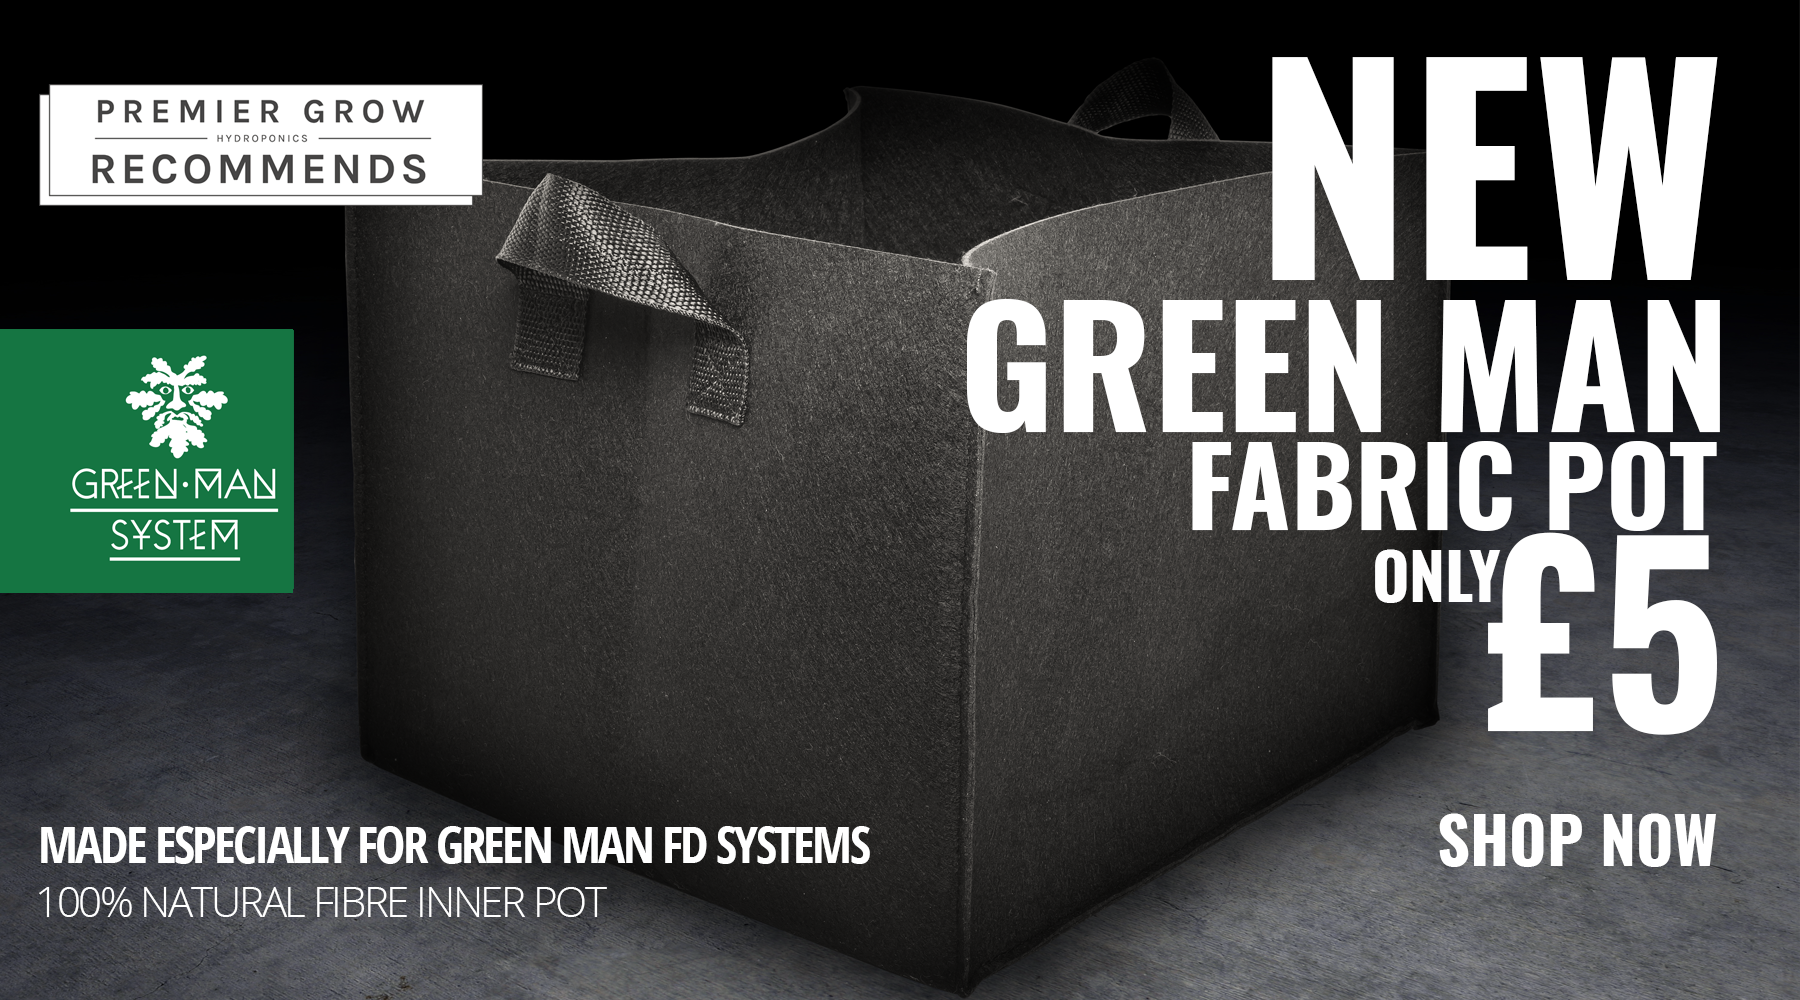 Green man System Fabric Pot